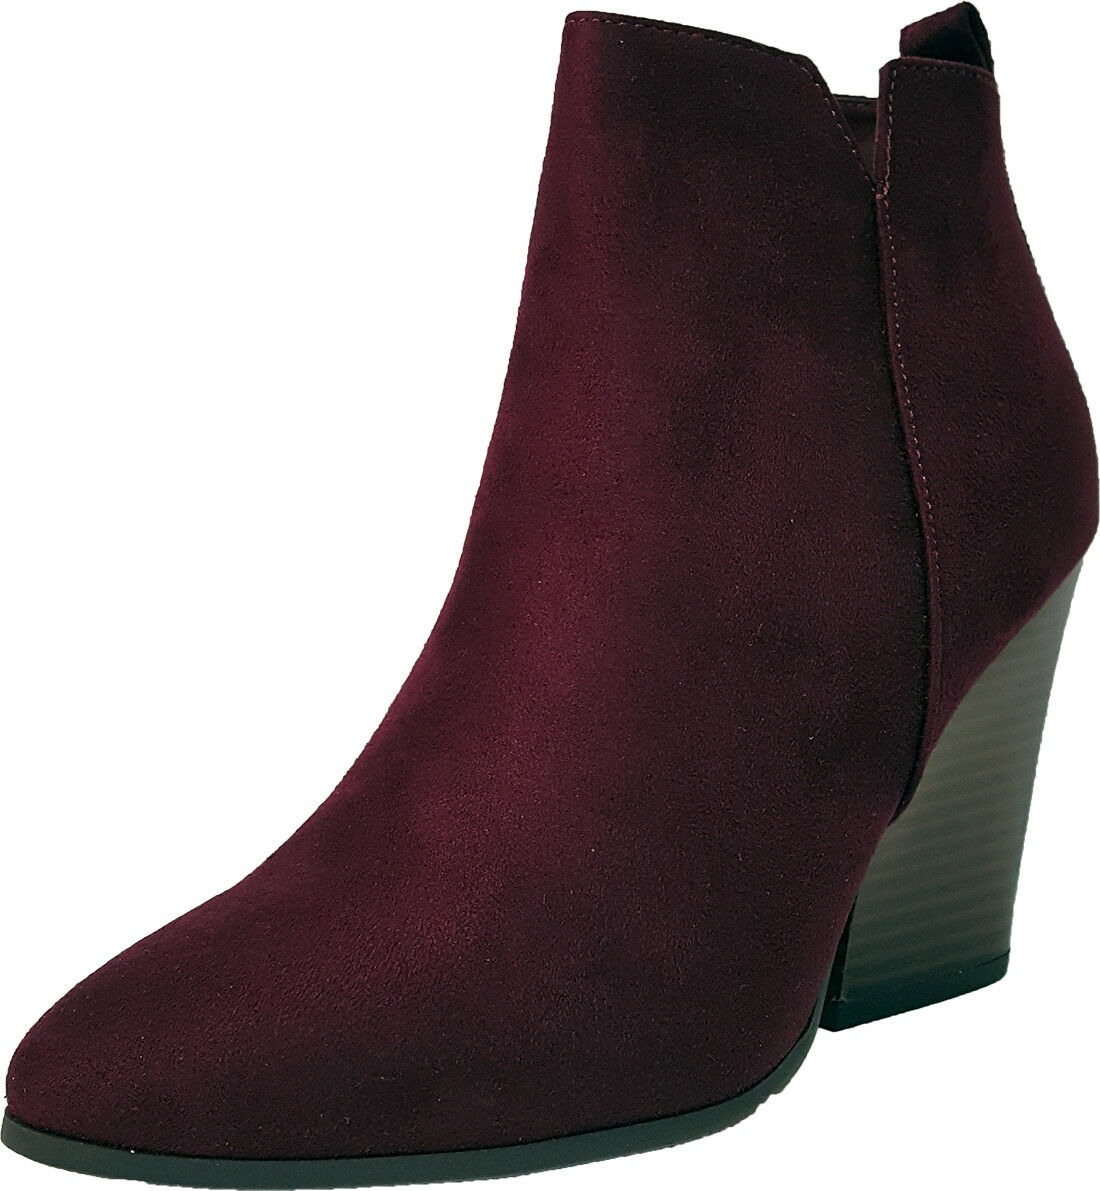 Gentlemen/Ladies Womens Toe Ladies Ankle Dress Boots Toe Womens Suede Faux Quality Leather Fashion Shoes US Various styles Order welcome Extreme speed logistics AG1335 8f926b